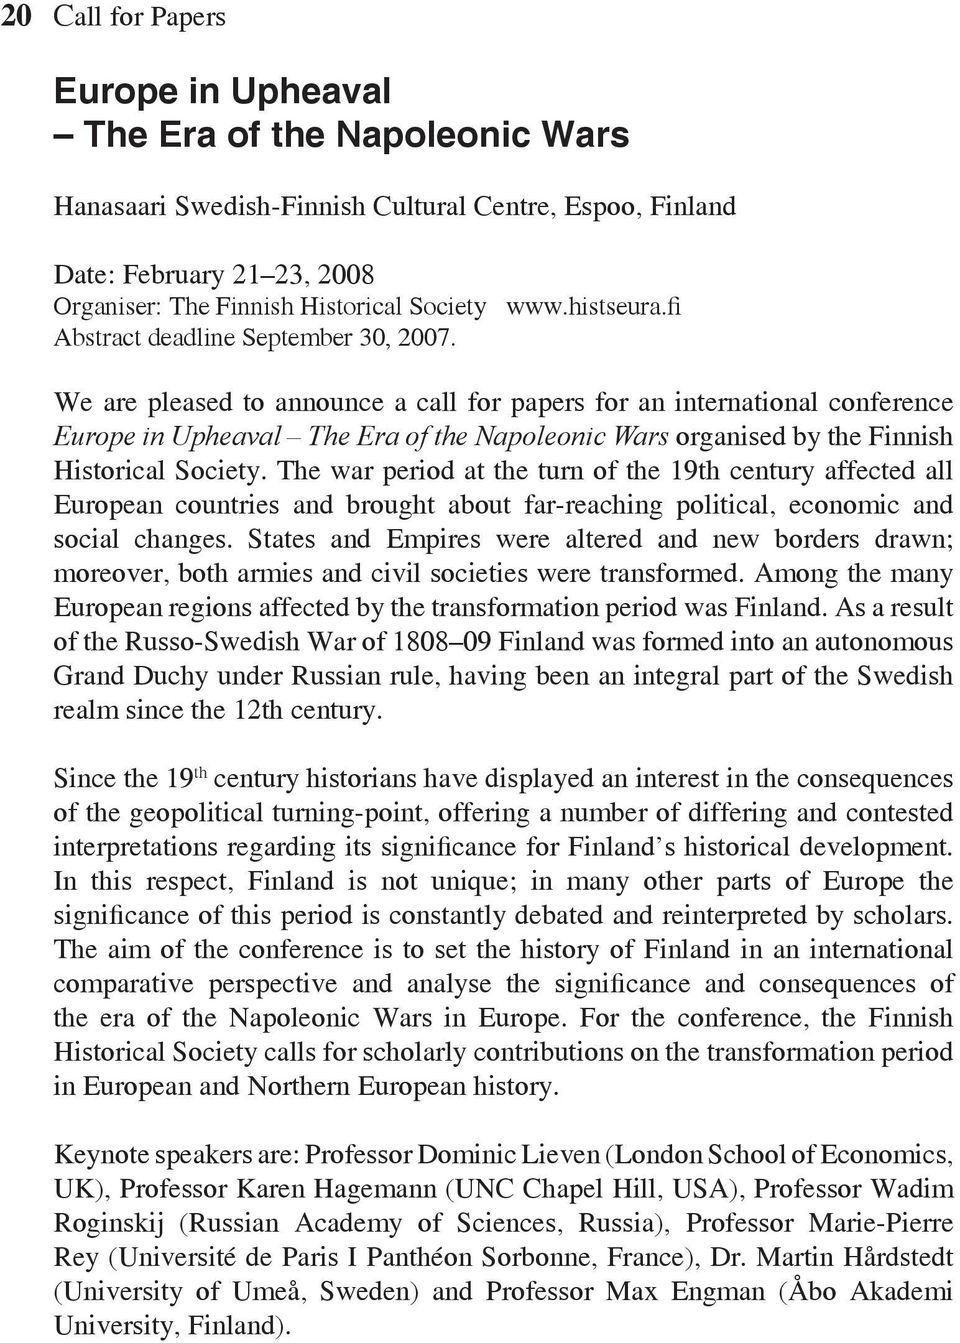 We are pleased to announce a call for papers for an international conference Europe in Upheaval The Era of the Napoleonic Wars organised by the Finnish Historical Society.